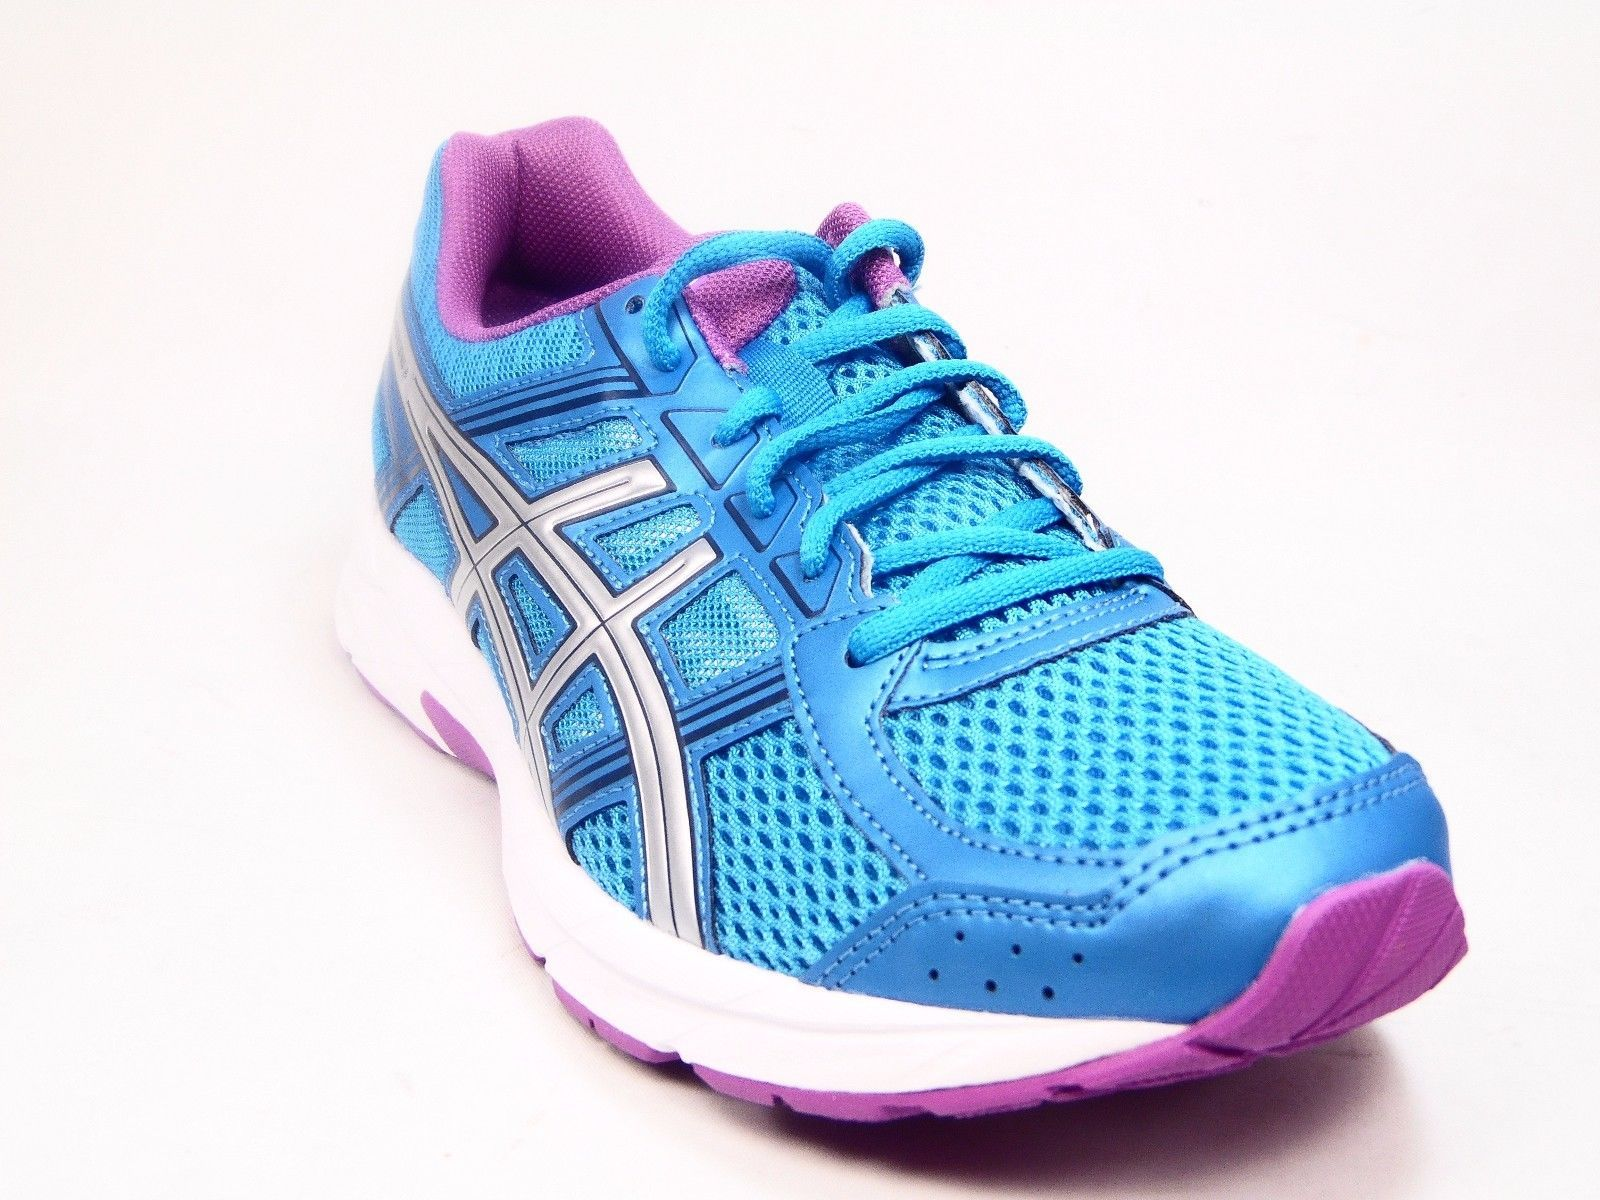 buy popular 089d2 91ea4 ASICS Women s Gel-Contend 4 Running Shoe Diva Blue Silver Orchid Size 8M